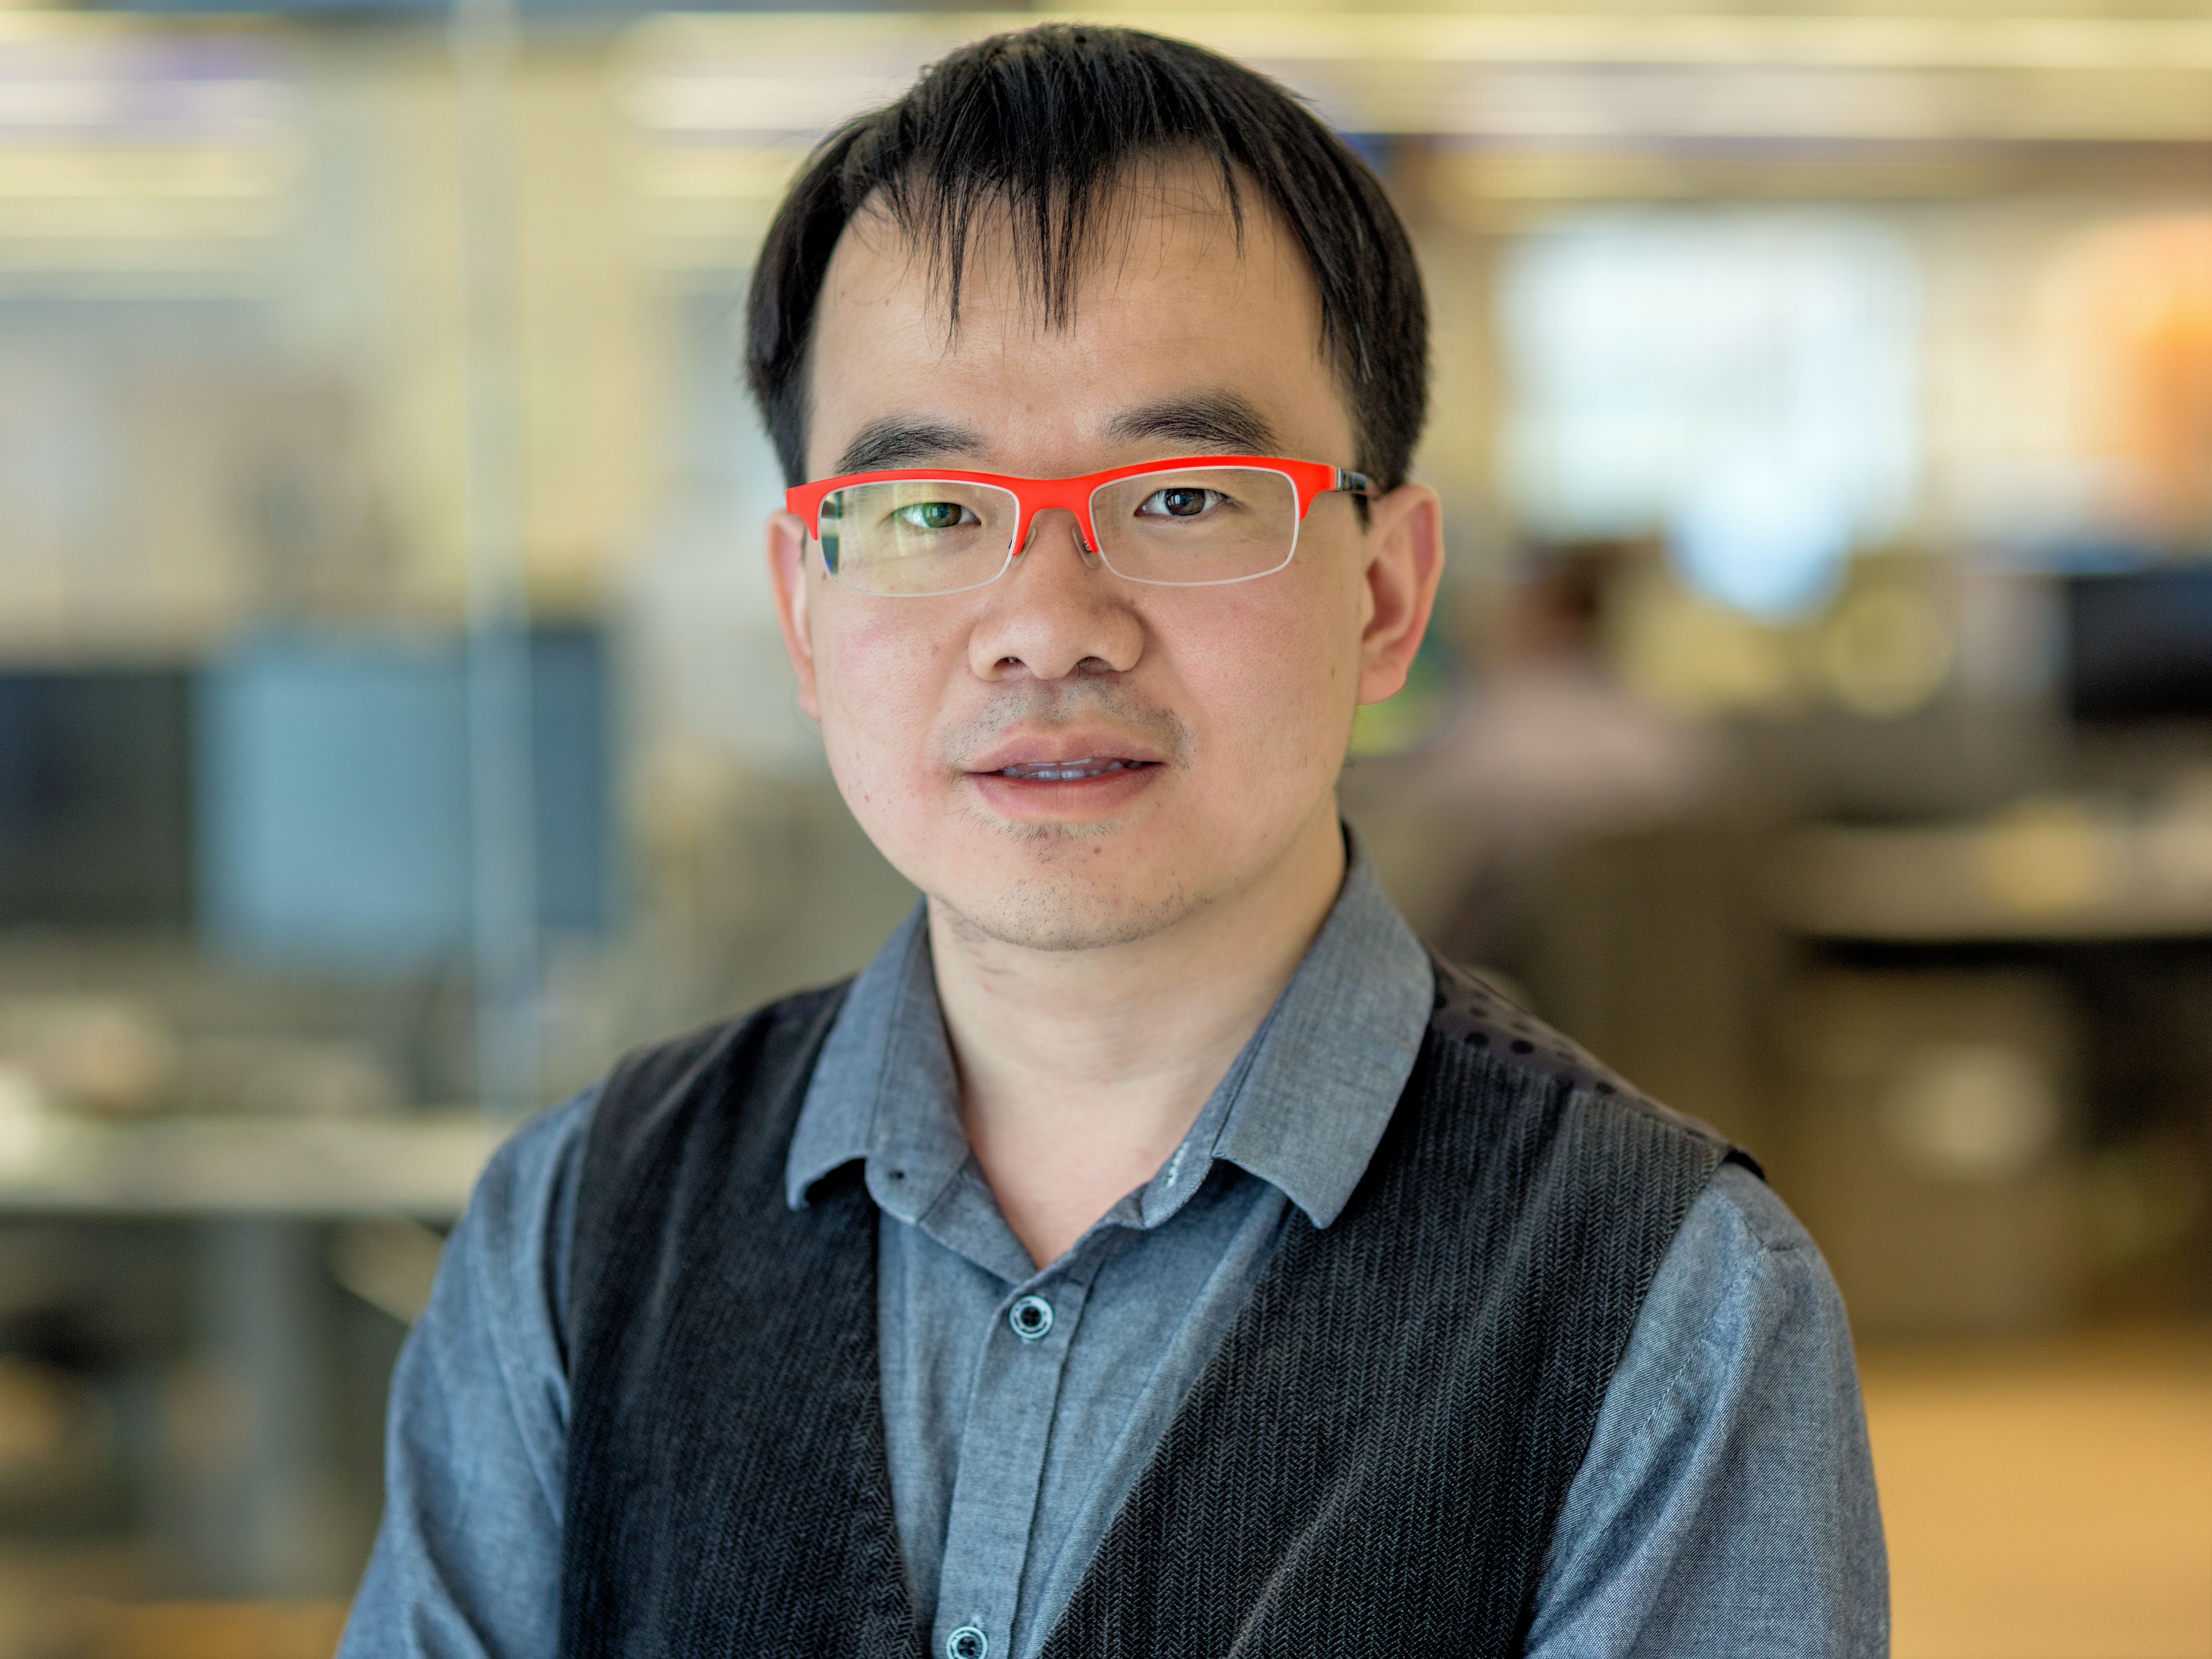 Bloomberg Engineer Hangbo Zhang photographed in New York at Bloomberg on May 15, 2017. Photographer: Lori Hoffman/Bloomberg